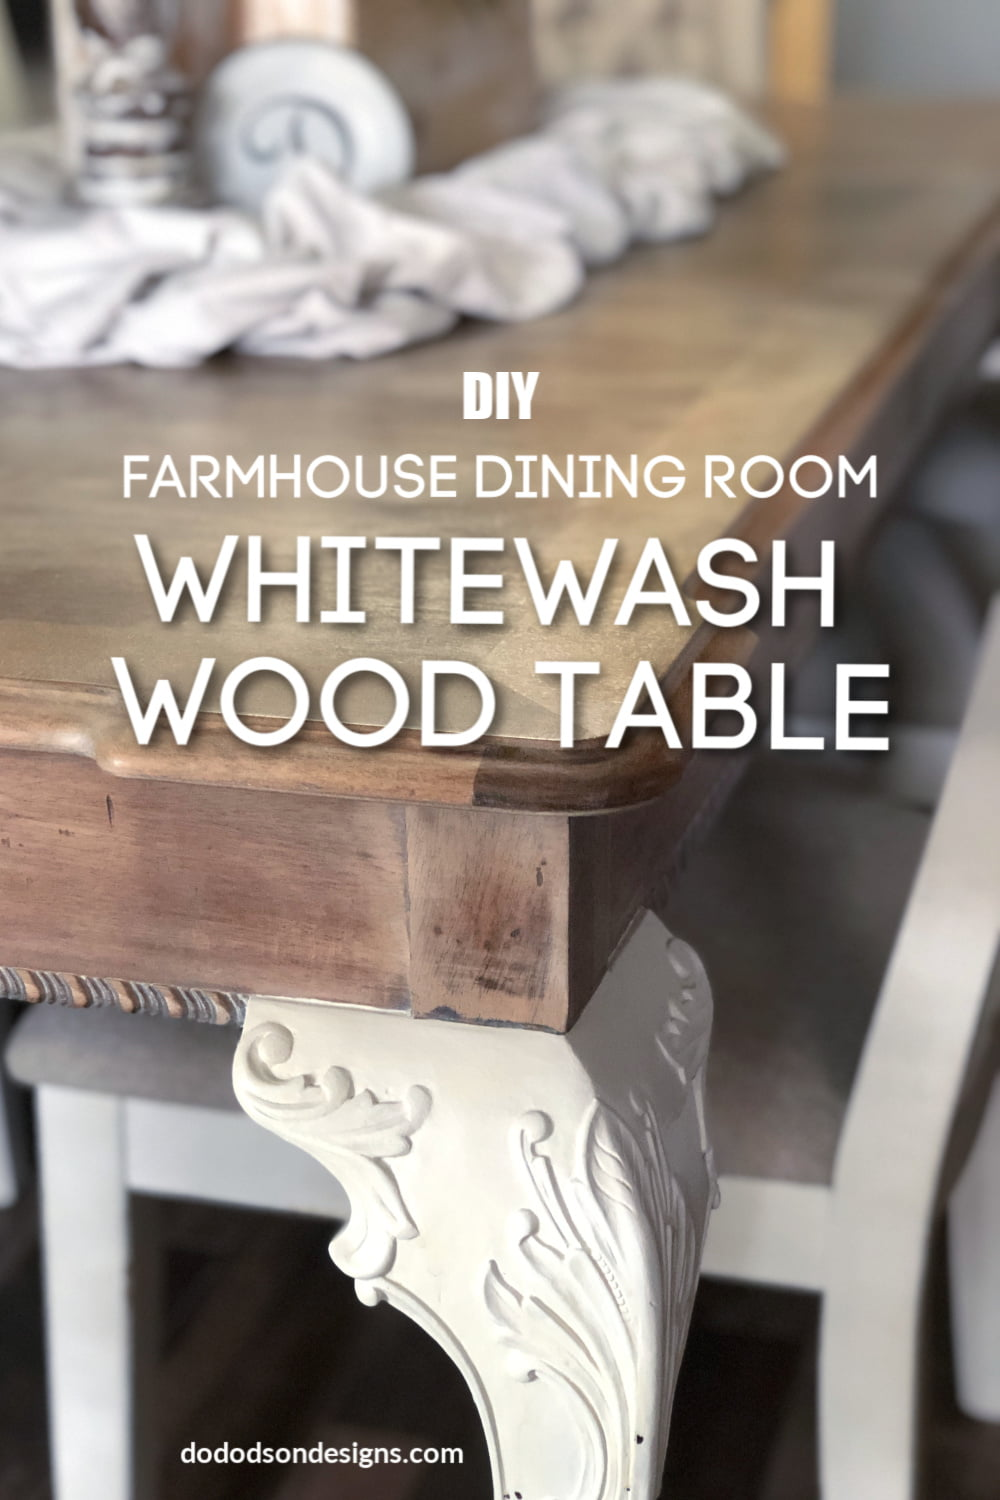 Try this DIY whitewash wood tabletop makeover idea for a fresh new look that will transform any table into a DIY Farmhouse table.